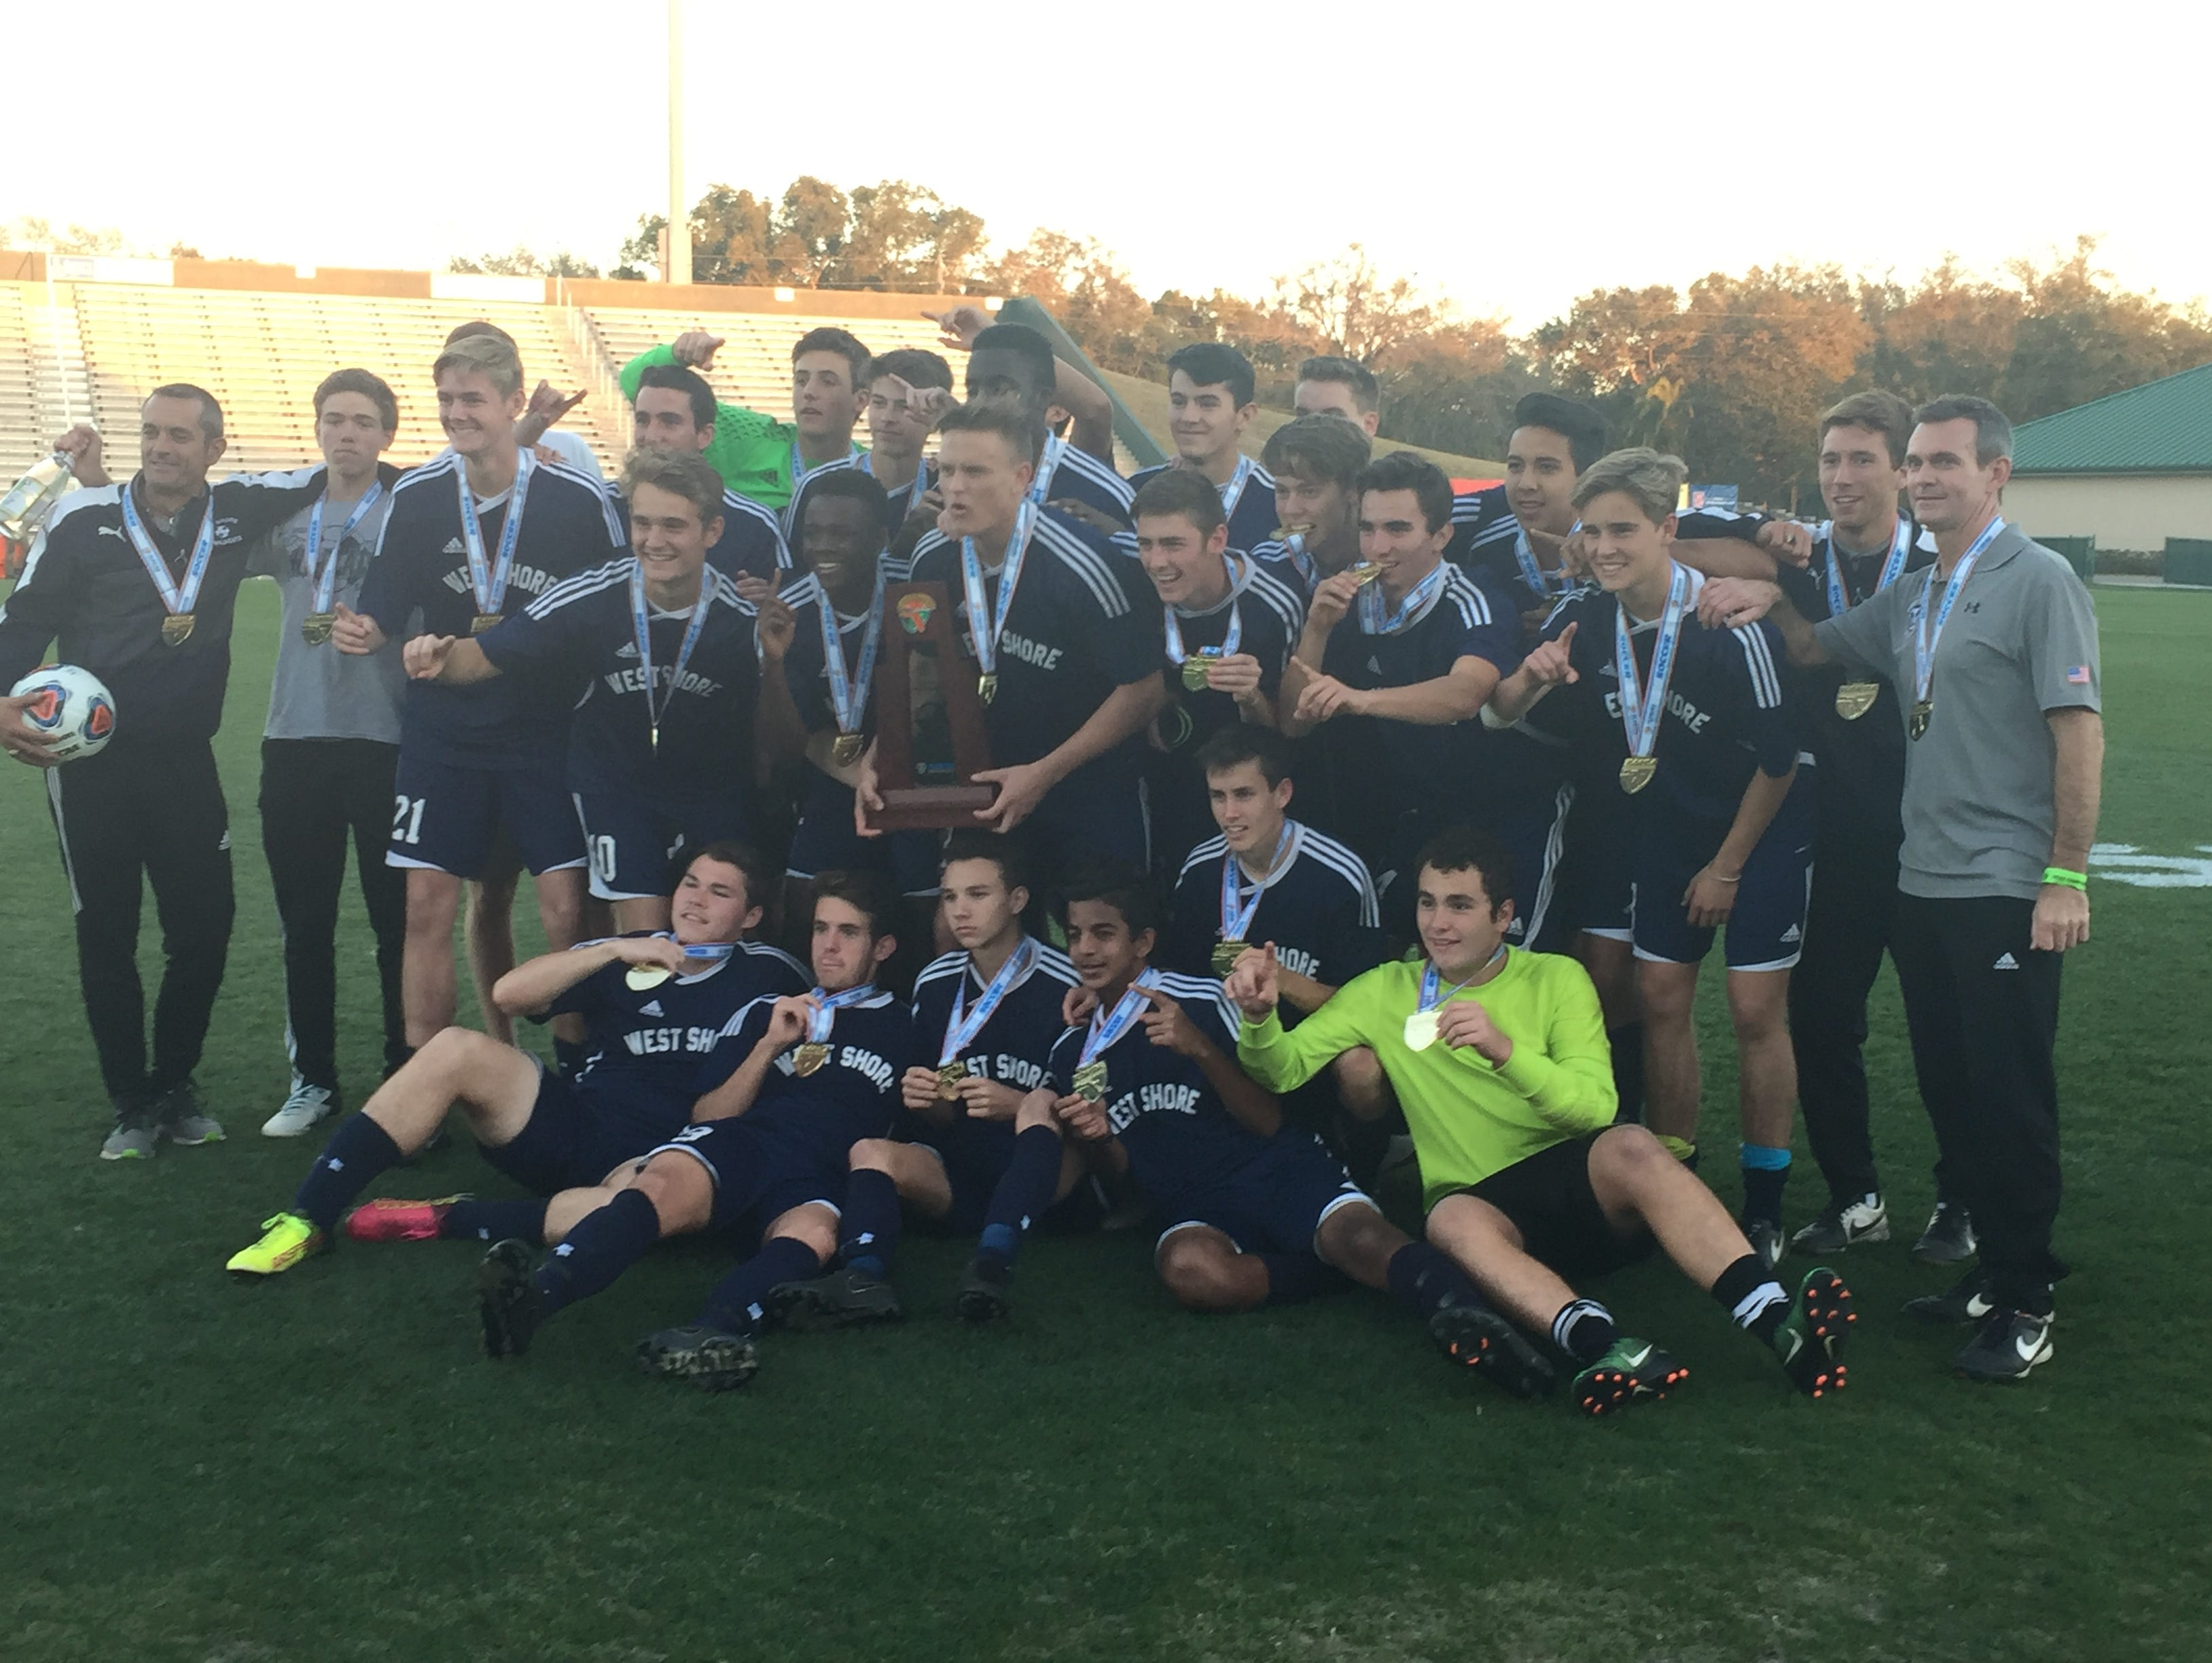 West Shore celebrates Thursday with the Class 2A state soccer trophy.